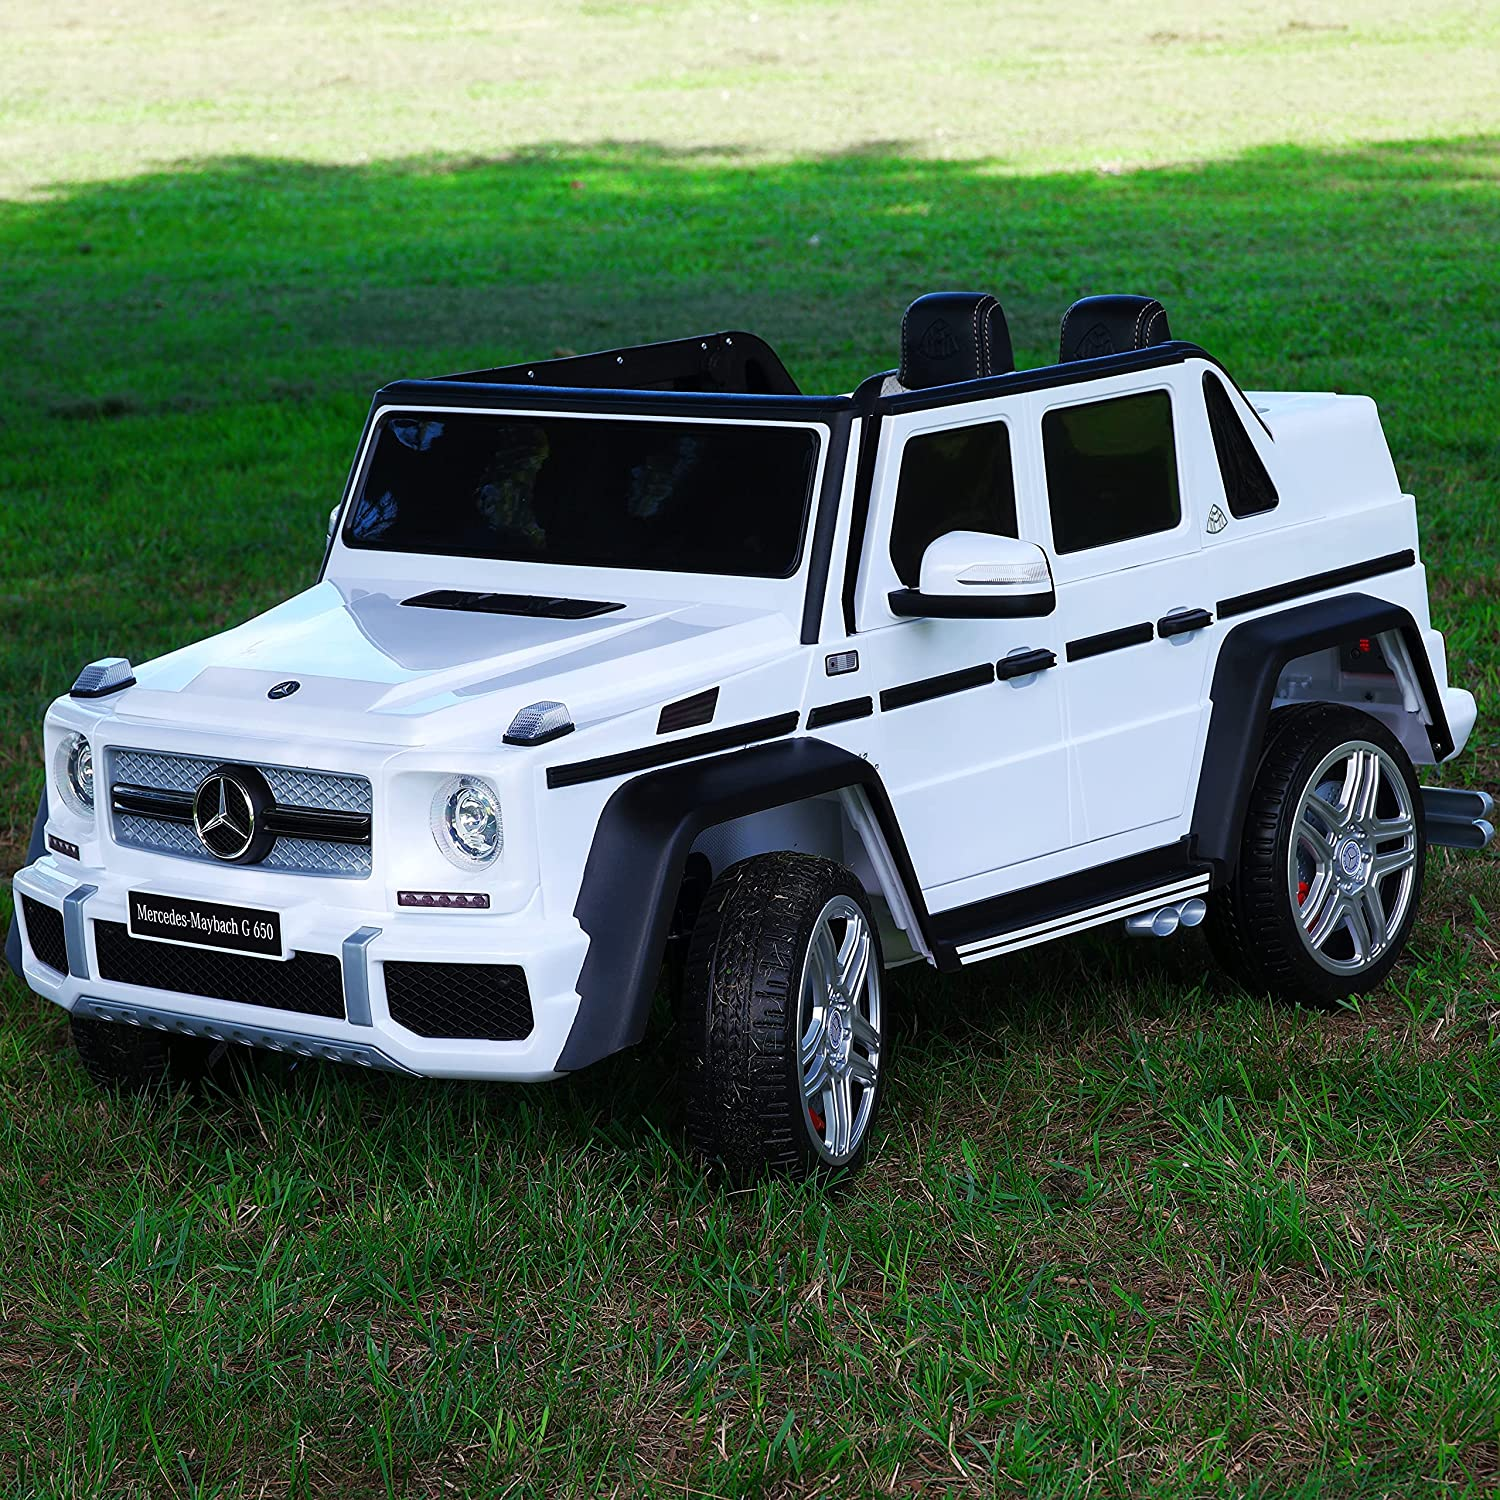 Moderno Kids Maybach G650 12V Kids Ride-On Car with Parental Remote + EVA Foam Rubber Wheels + Leather Seat + MP3 Player with USB Port + Wireless Music Streaming (White)